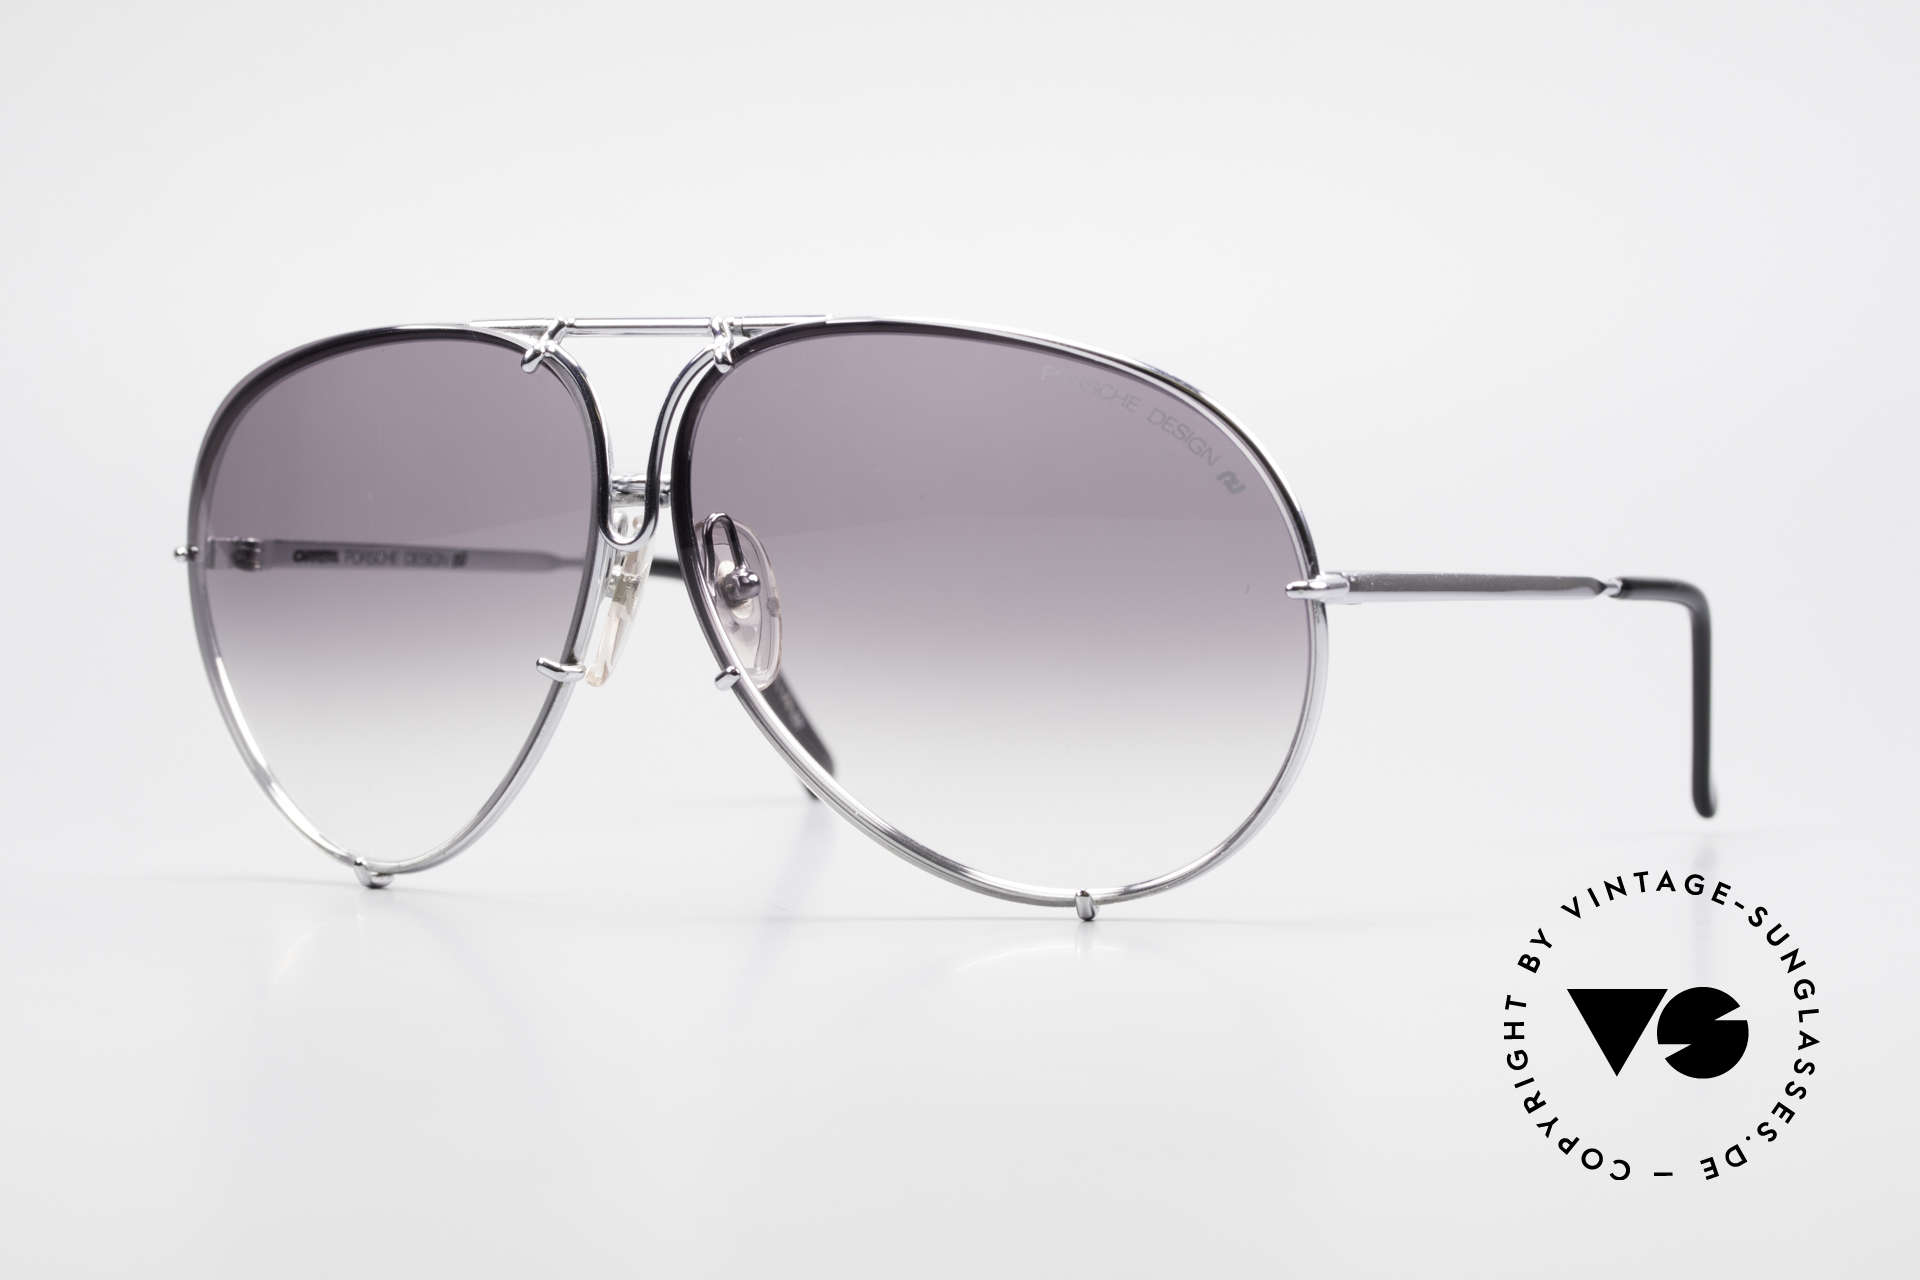 Porsche 5621 80's XL Aviator Sunglasses, vintage Porsche Design by Carrera shades from 1987, Made for Men and Women